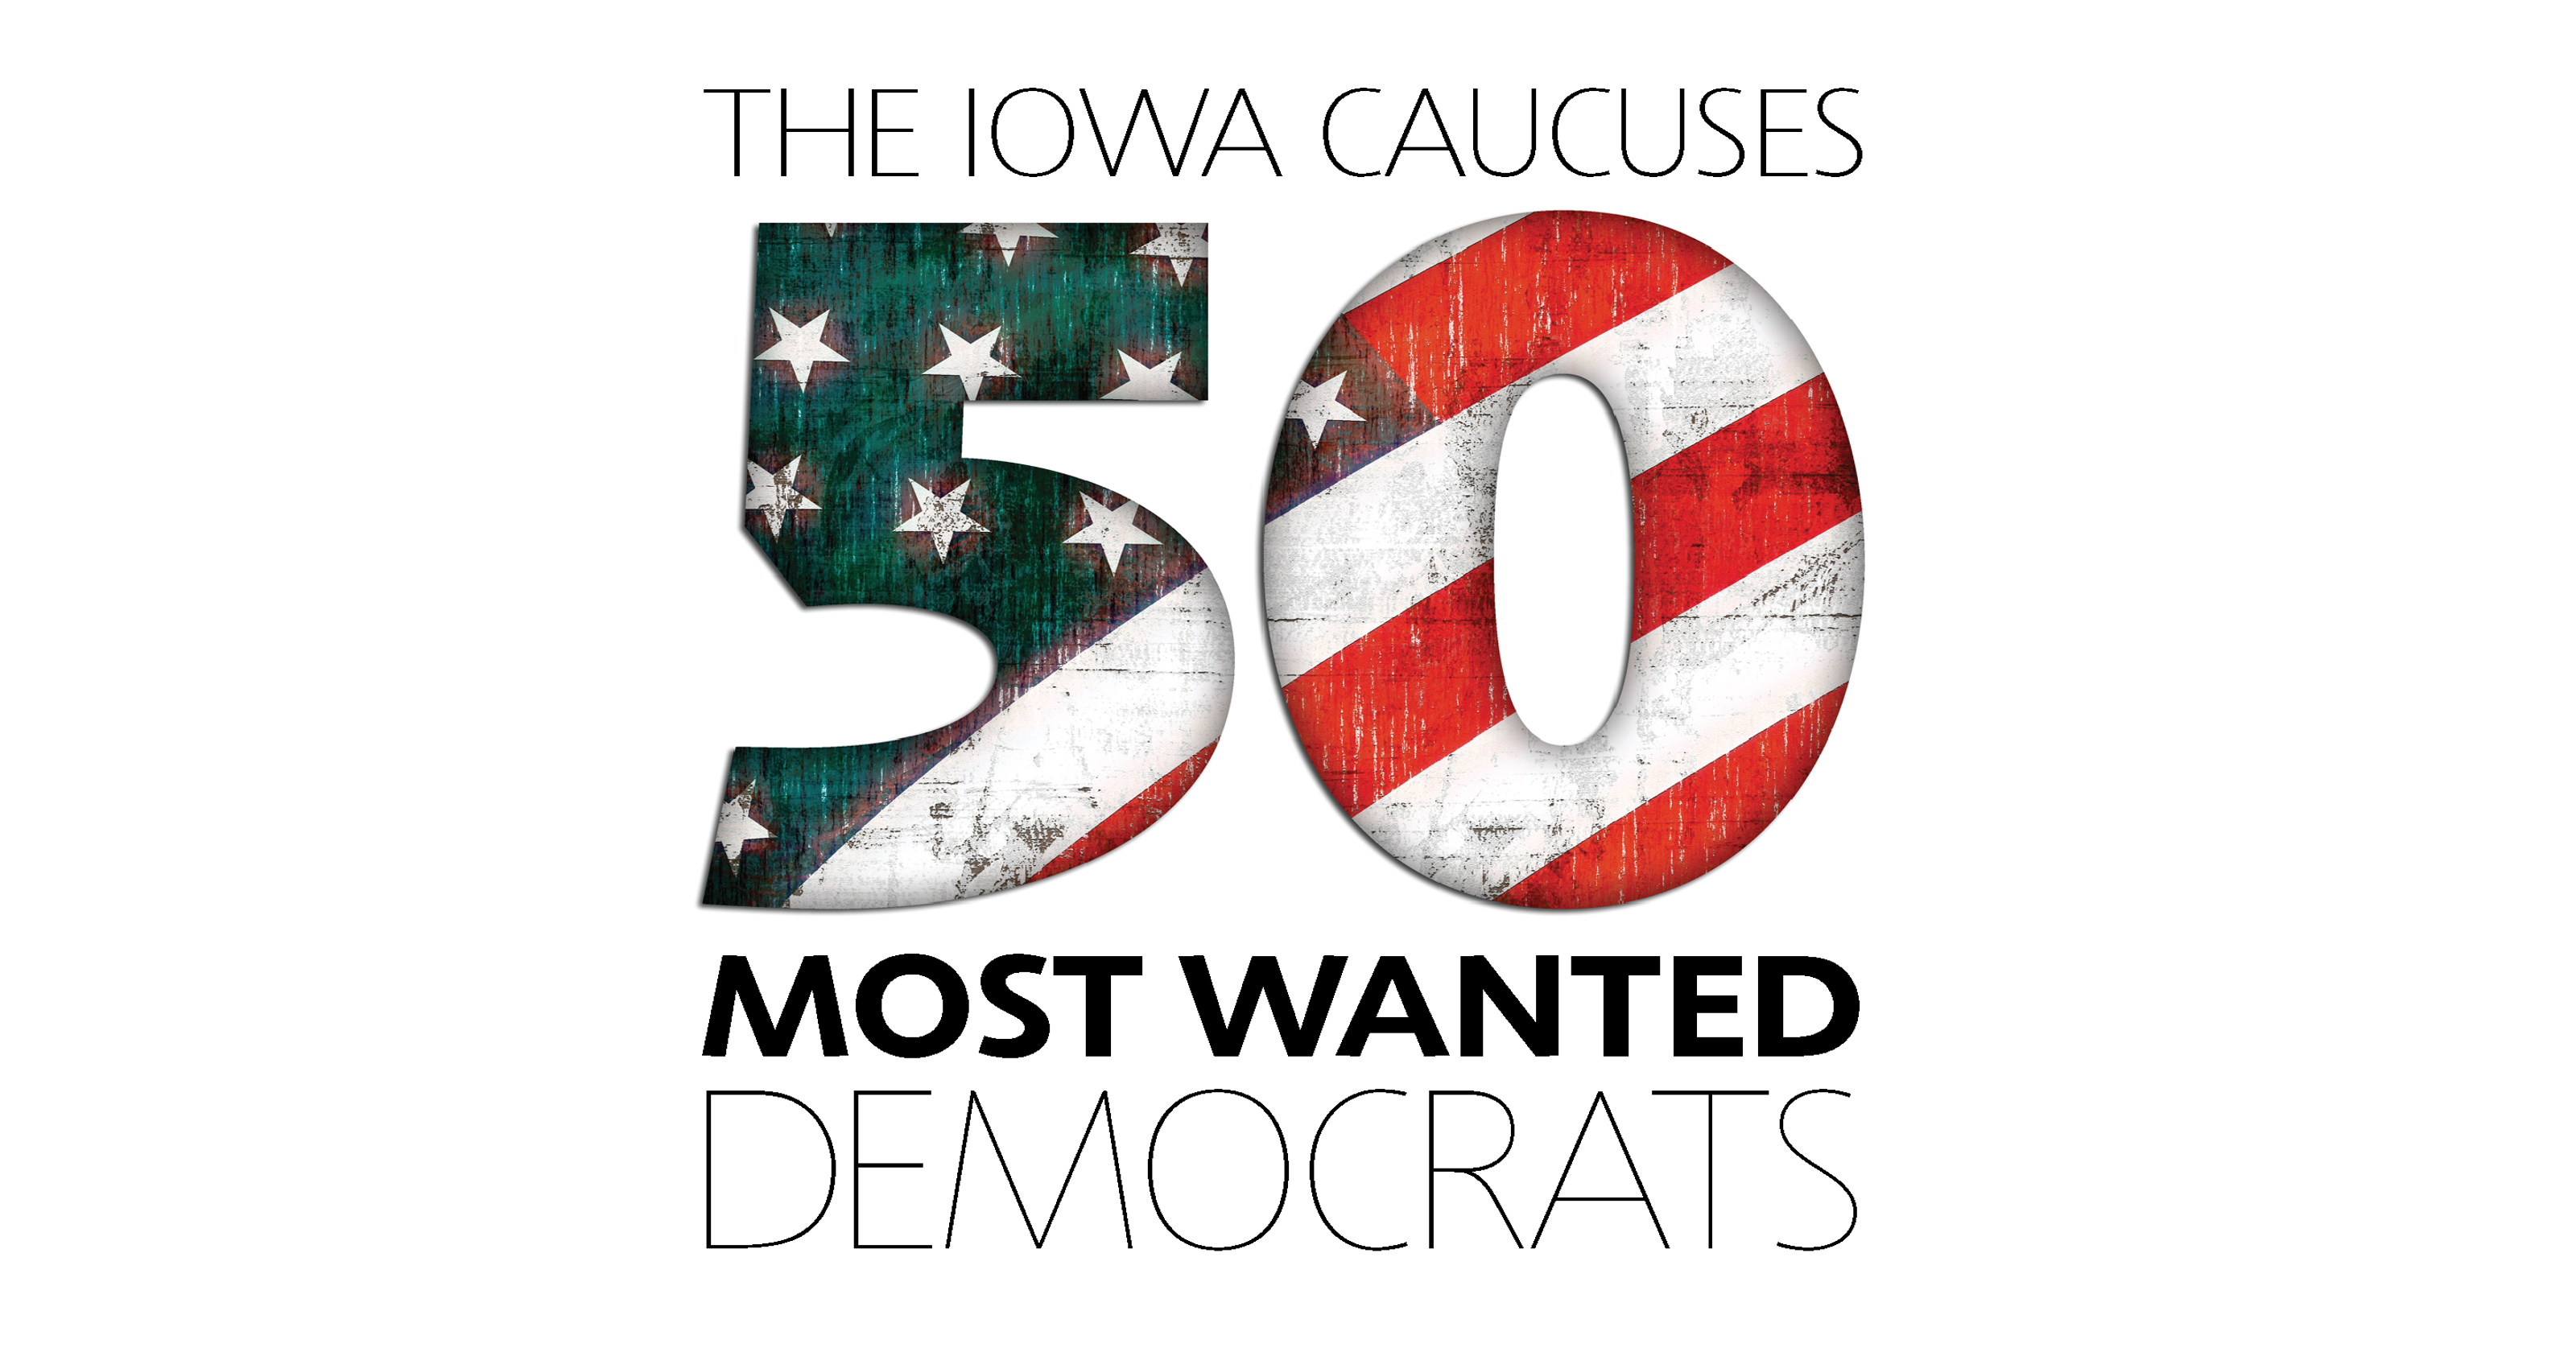 iowa caucuses: 50 most wanted democrats